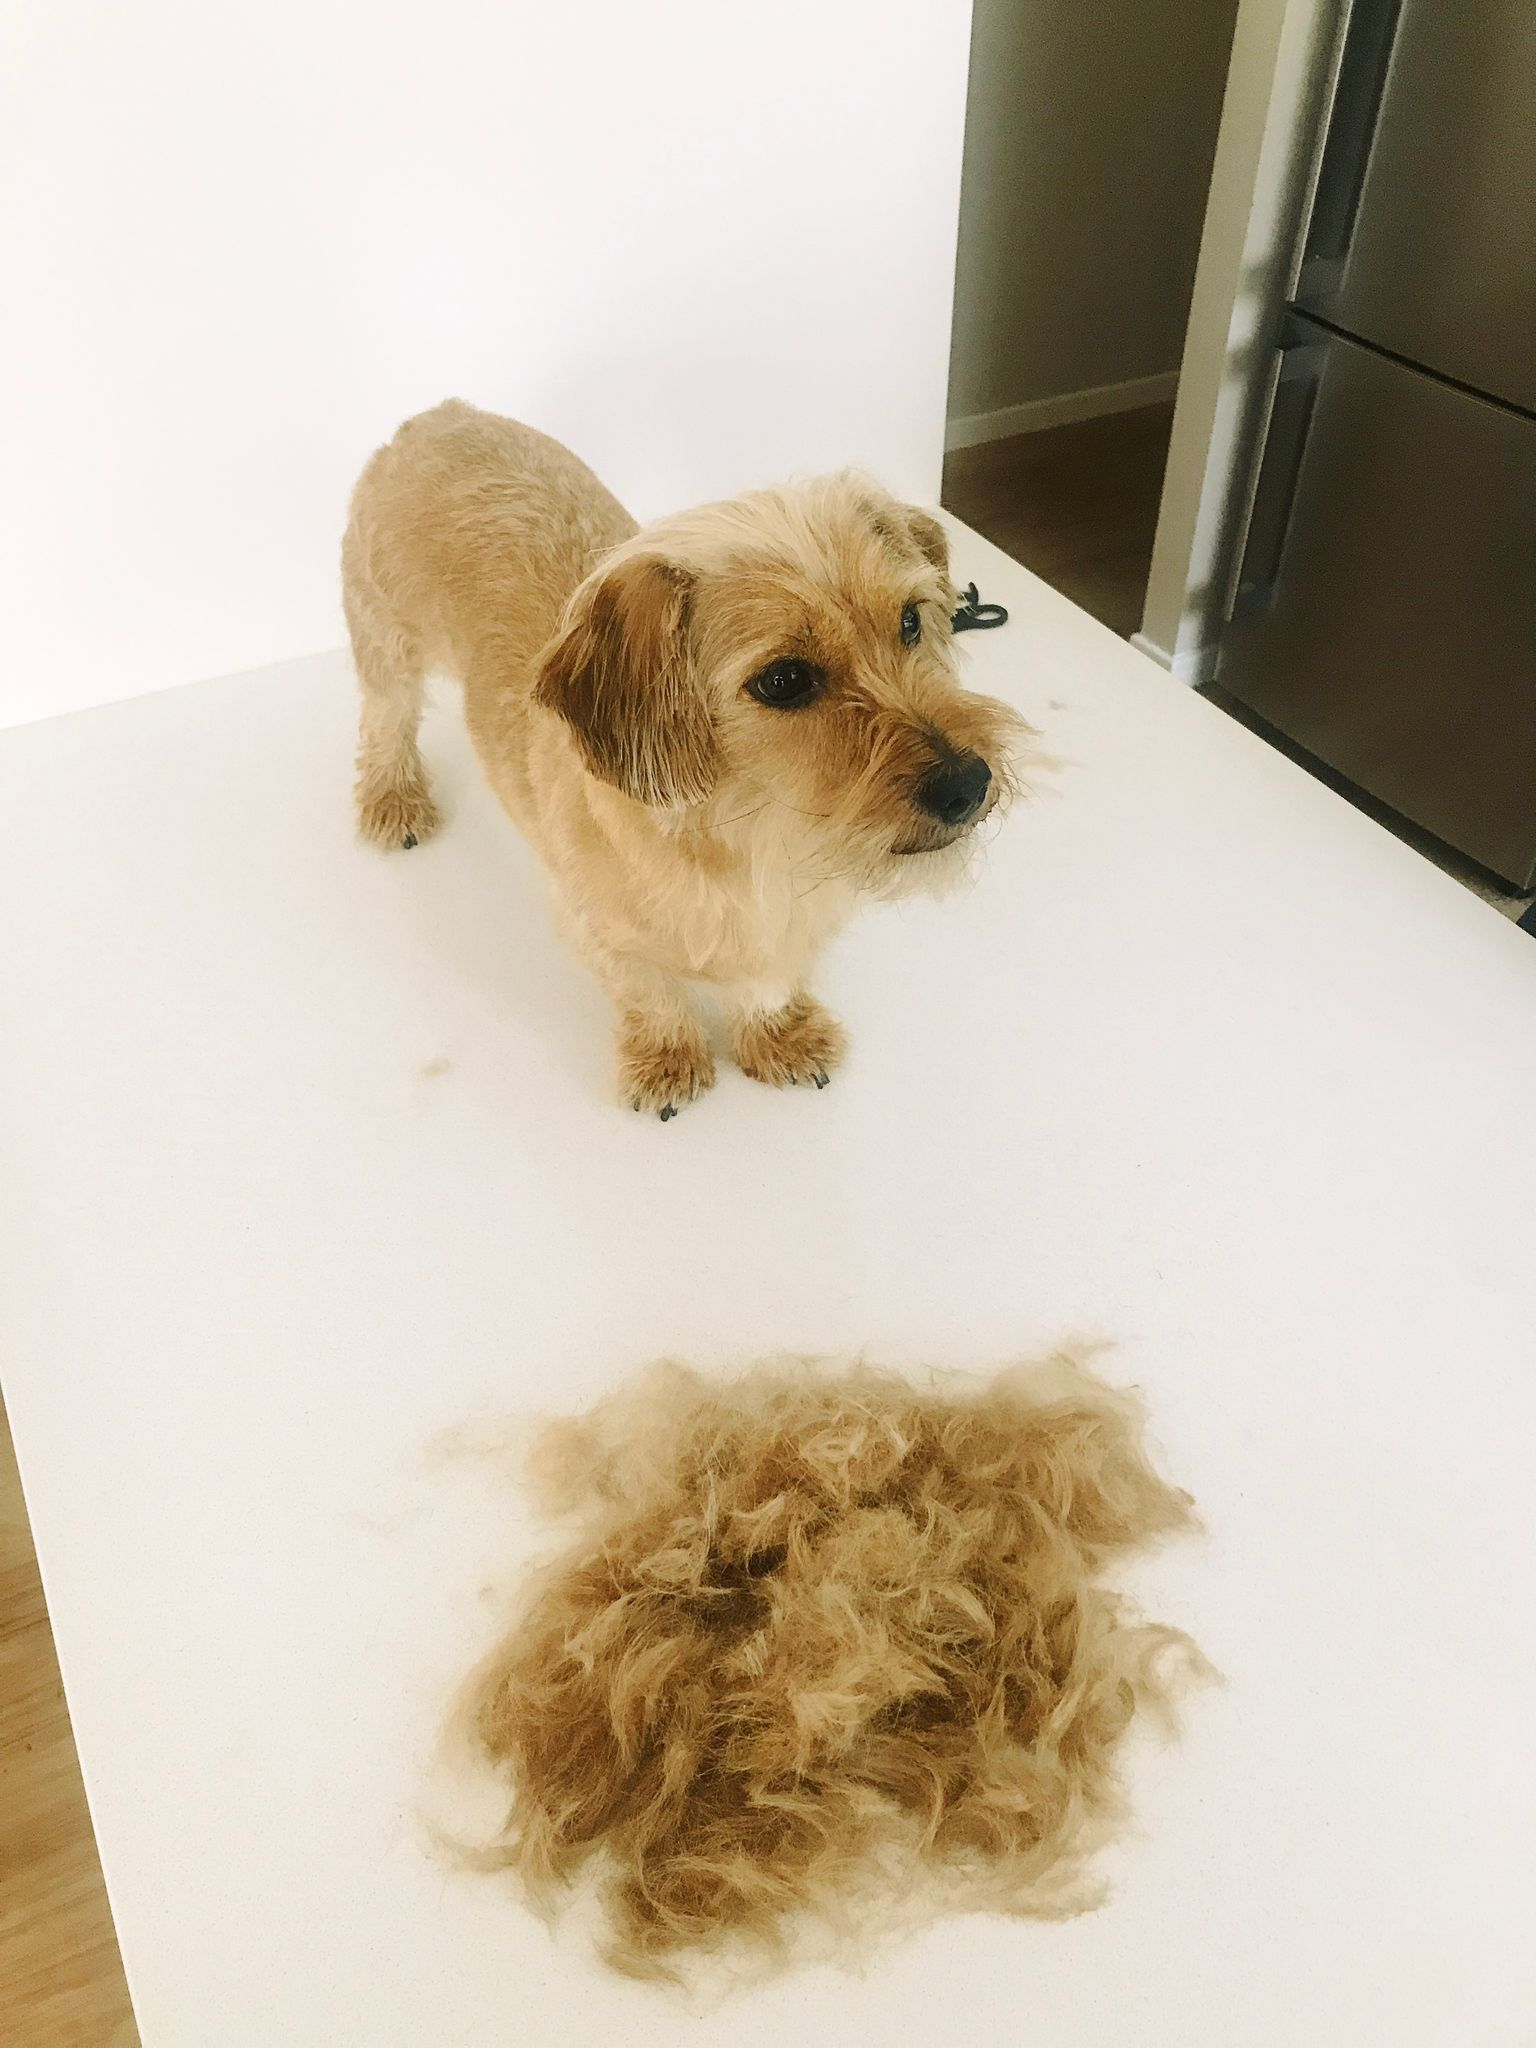 Beanie standing freshly shaved in front of a large pile of hair.